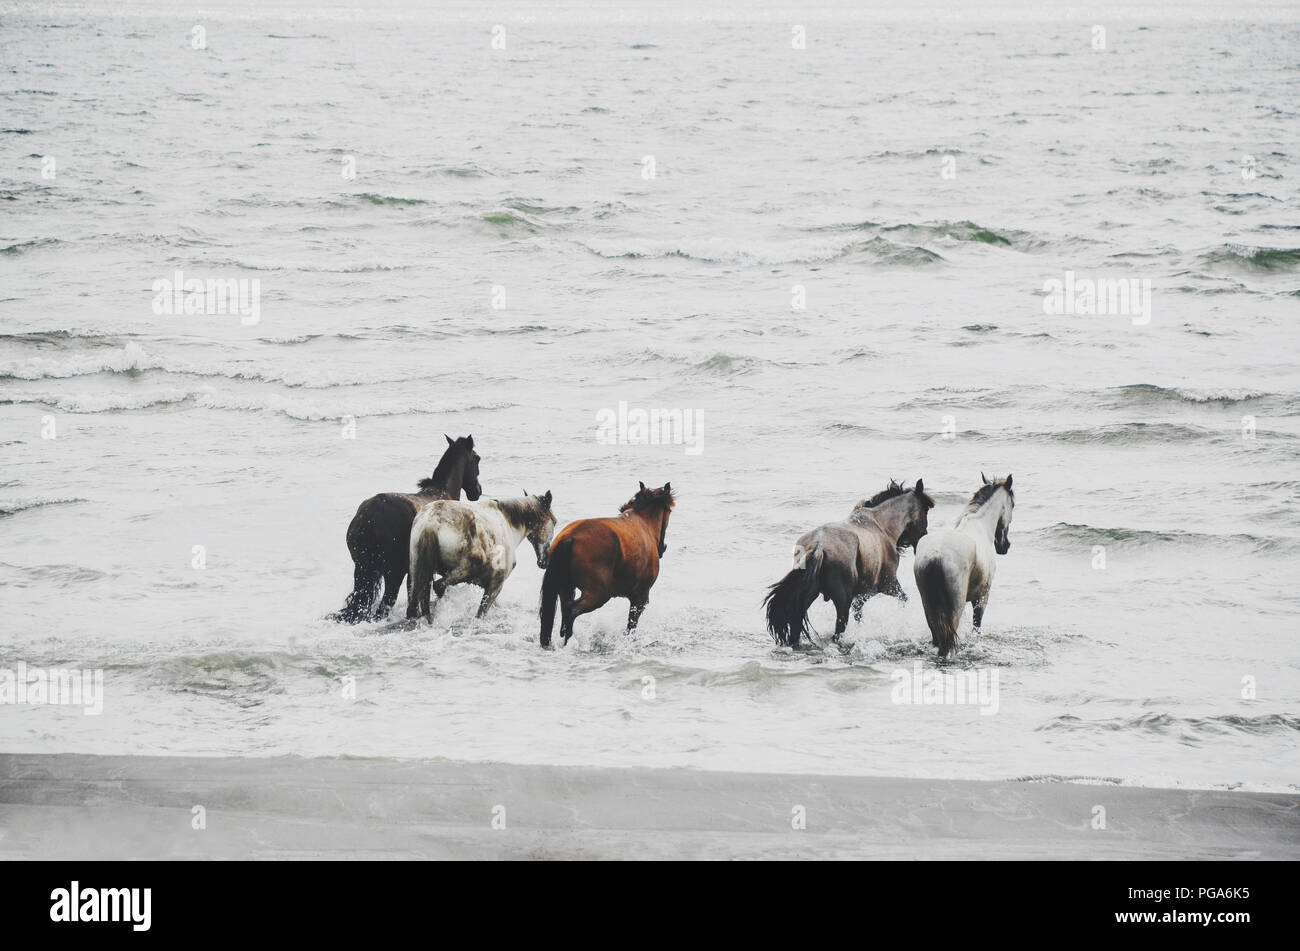 Majestic Horse Running High Resolution Stock Photography And Images Alamy